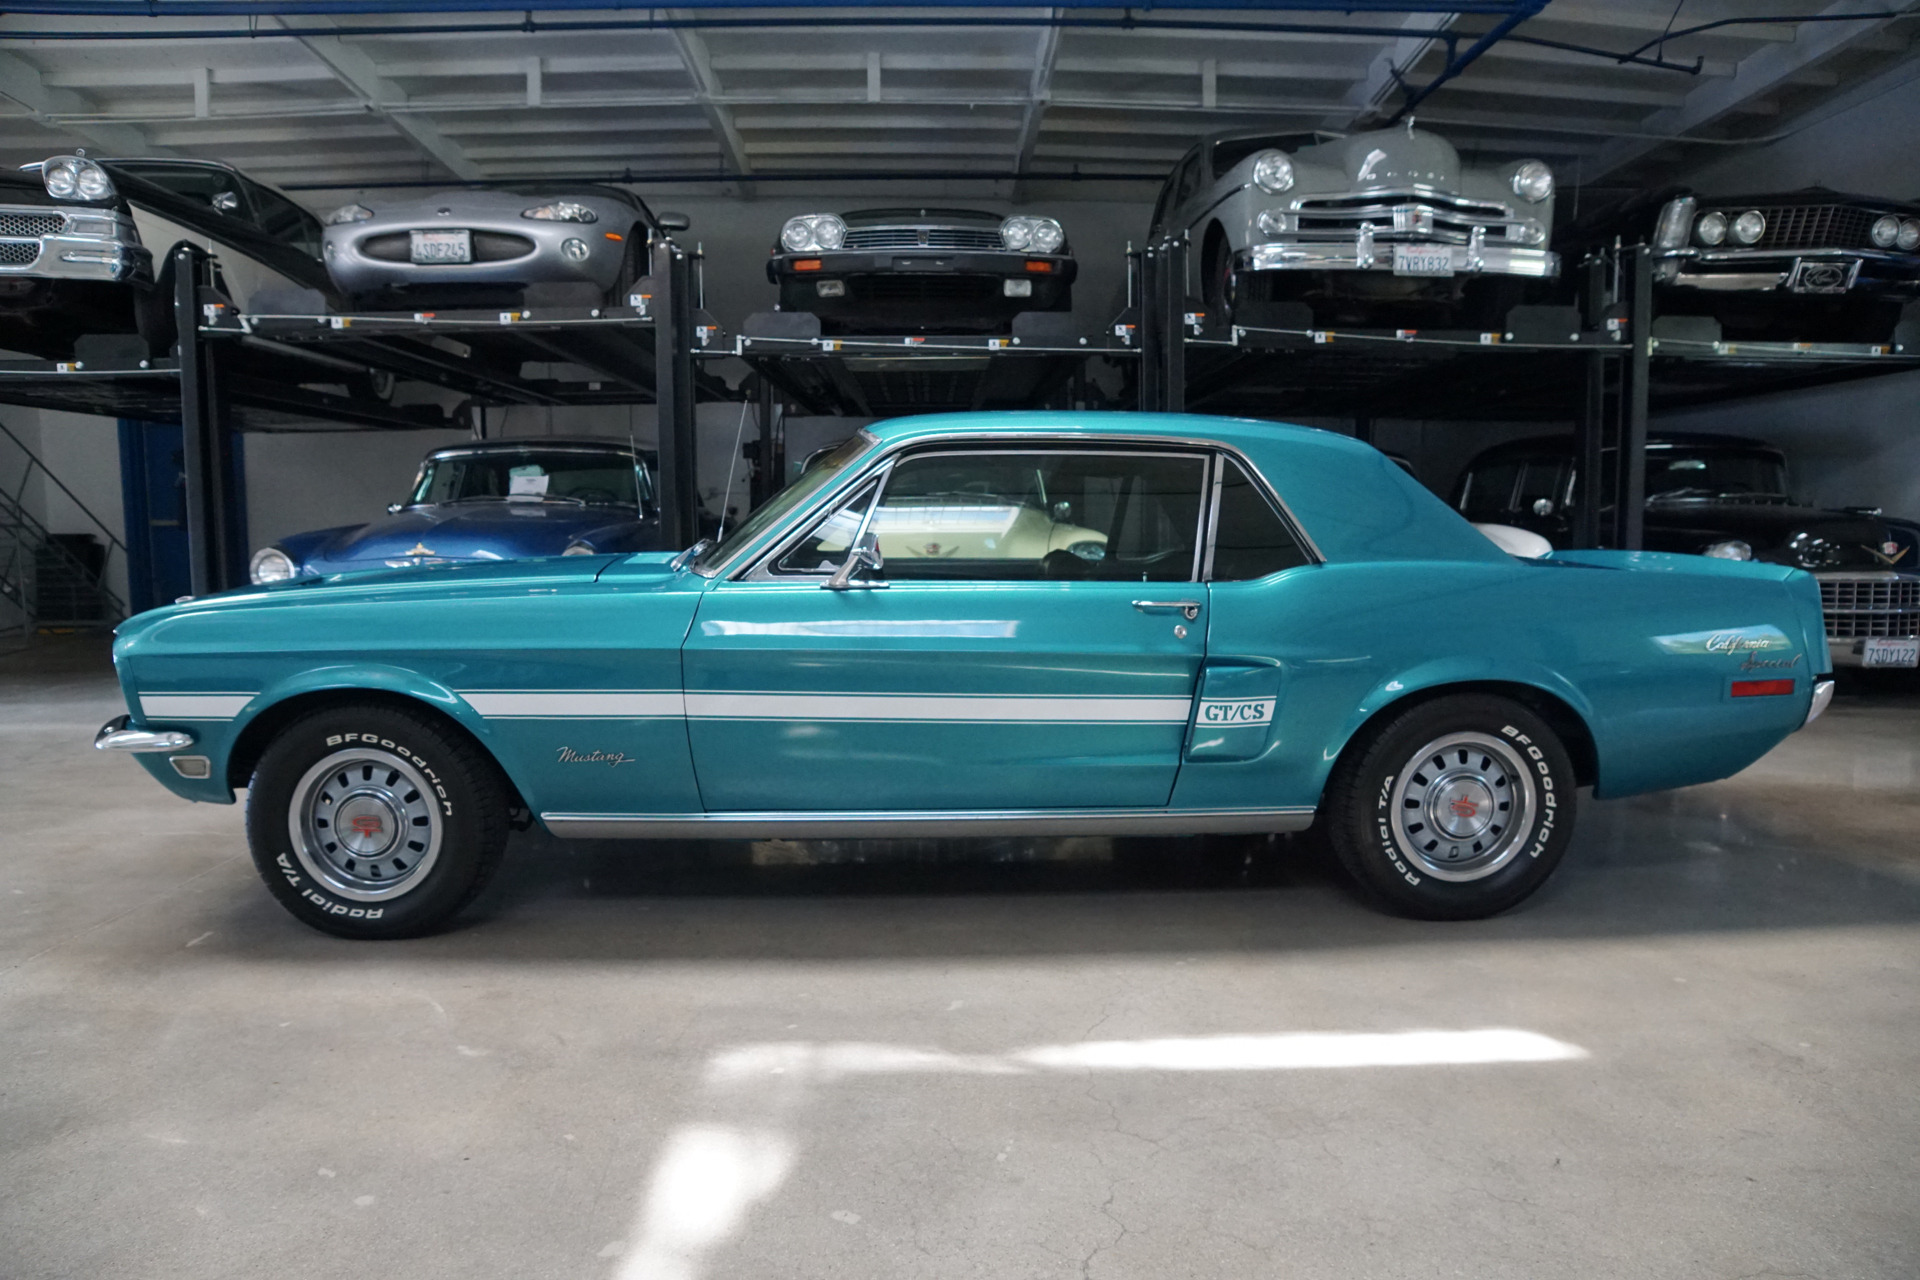 1968 Ford Mustang California Special California Special Stock # 212